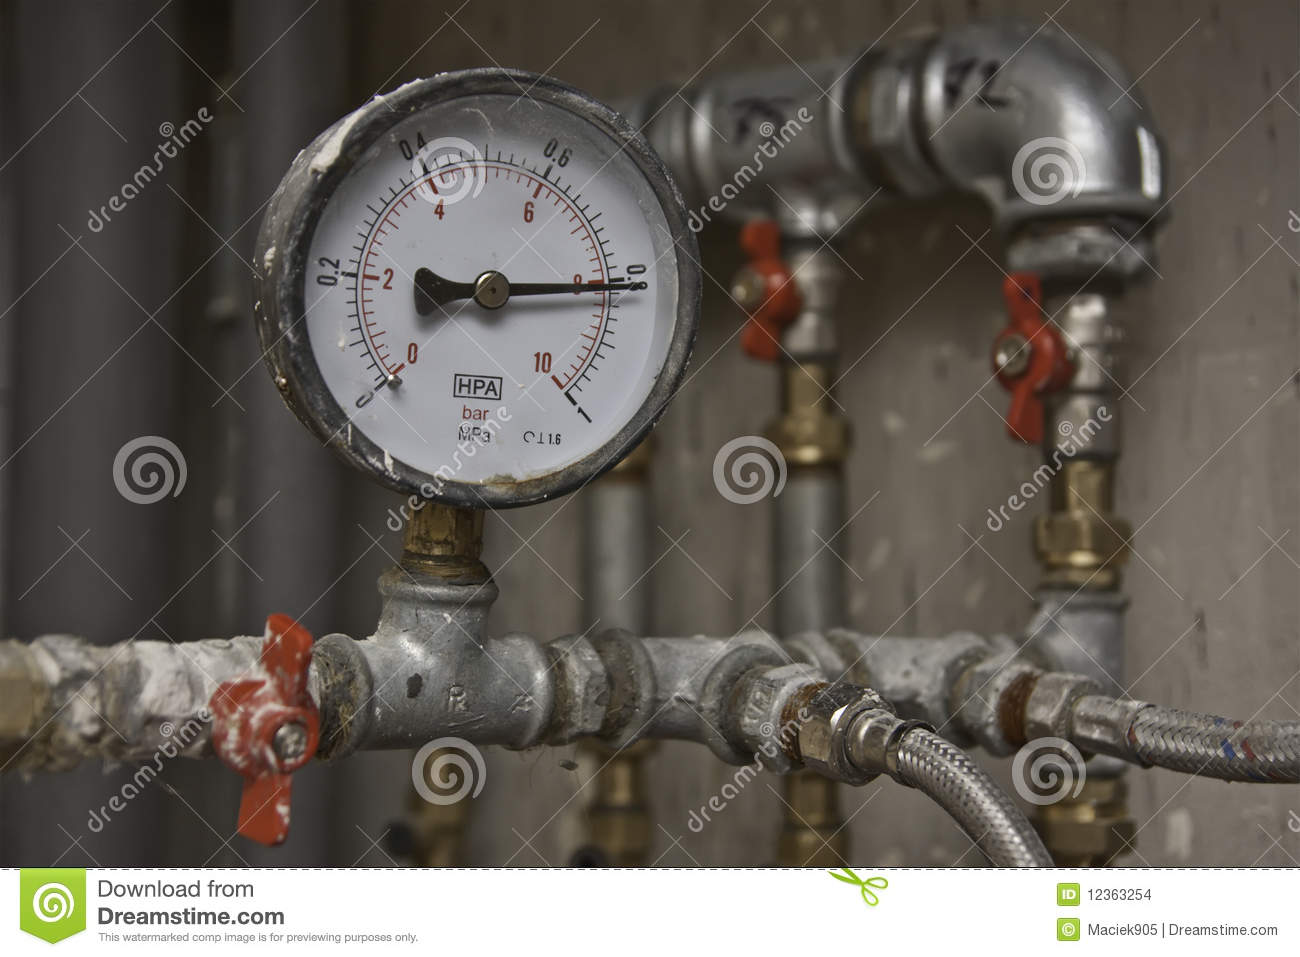 Industrial pressure meter and water pipes